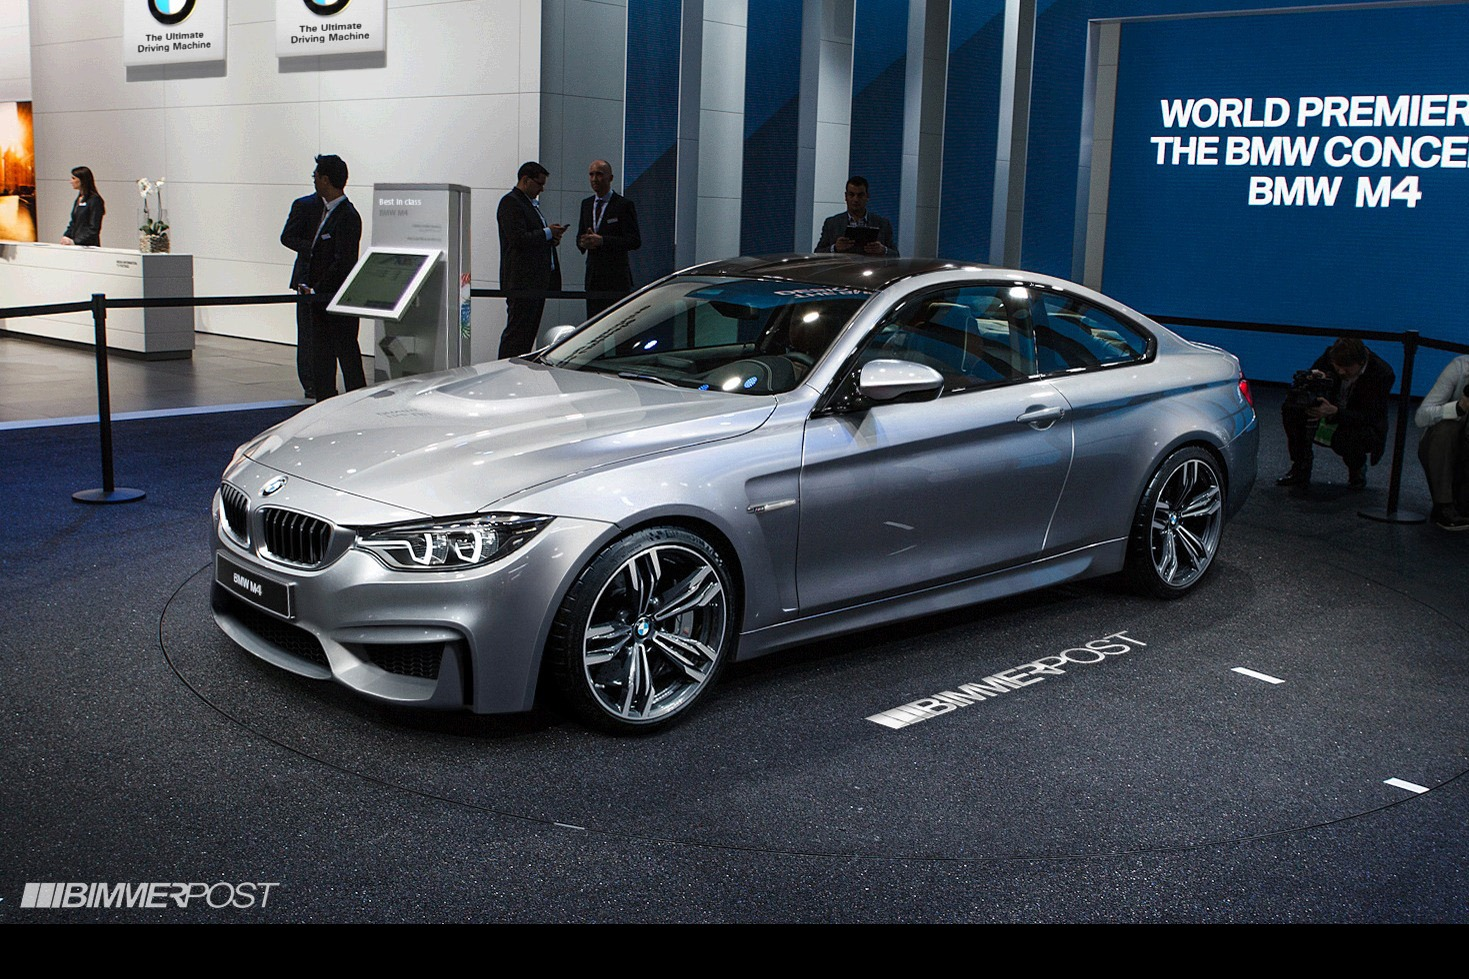 2013 bmw m4 series coupe size183.6KB